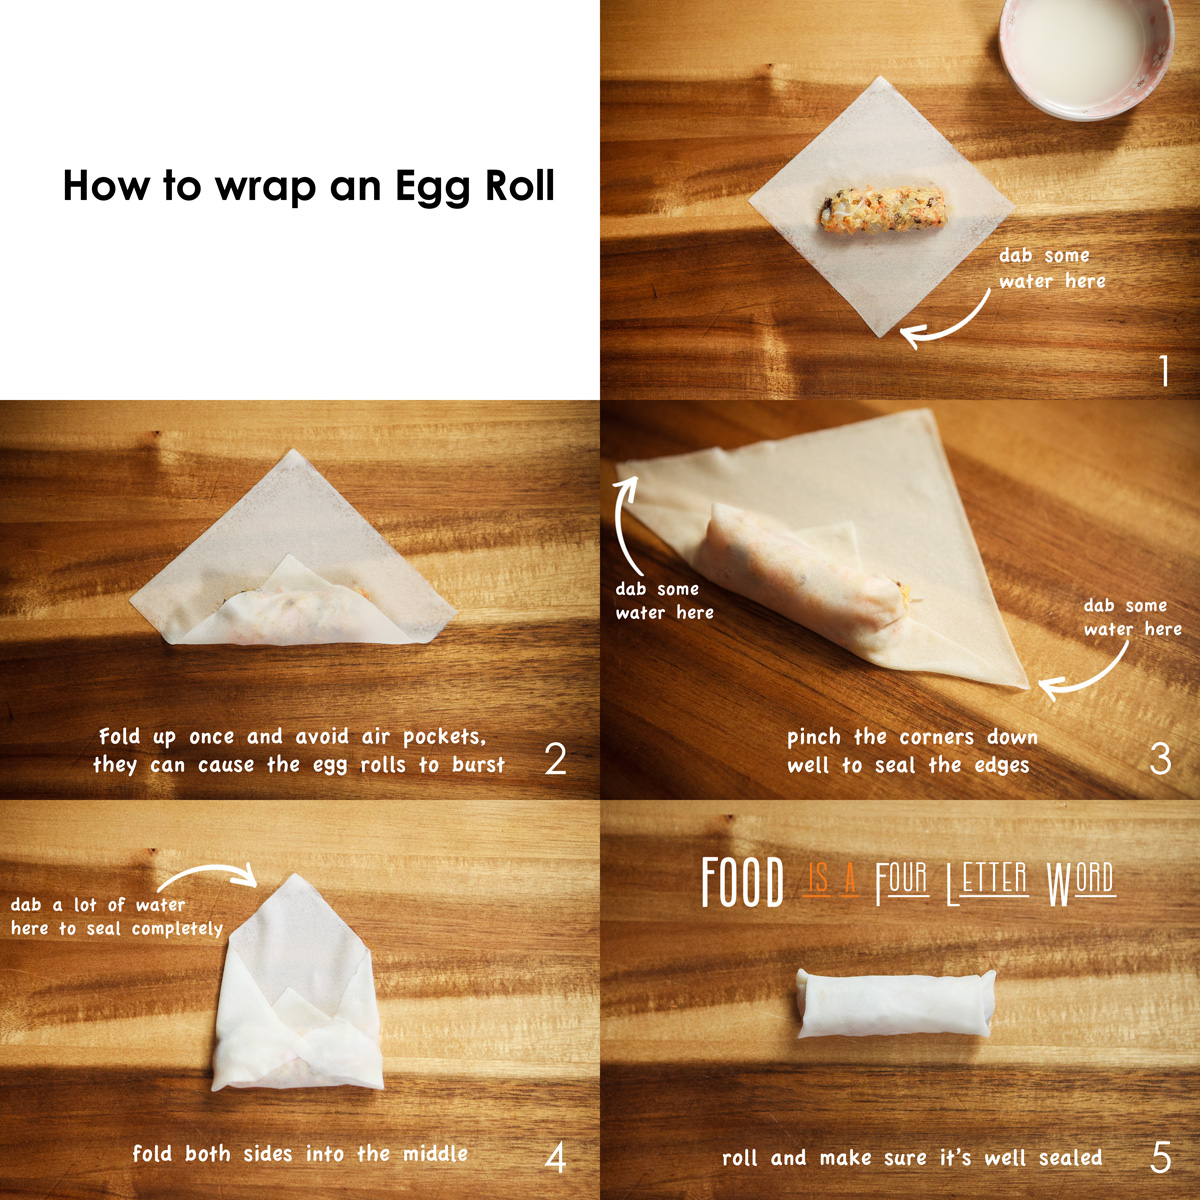 How to wrap and egg roll